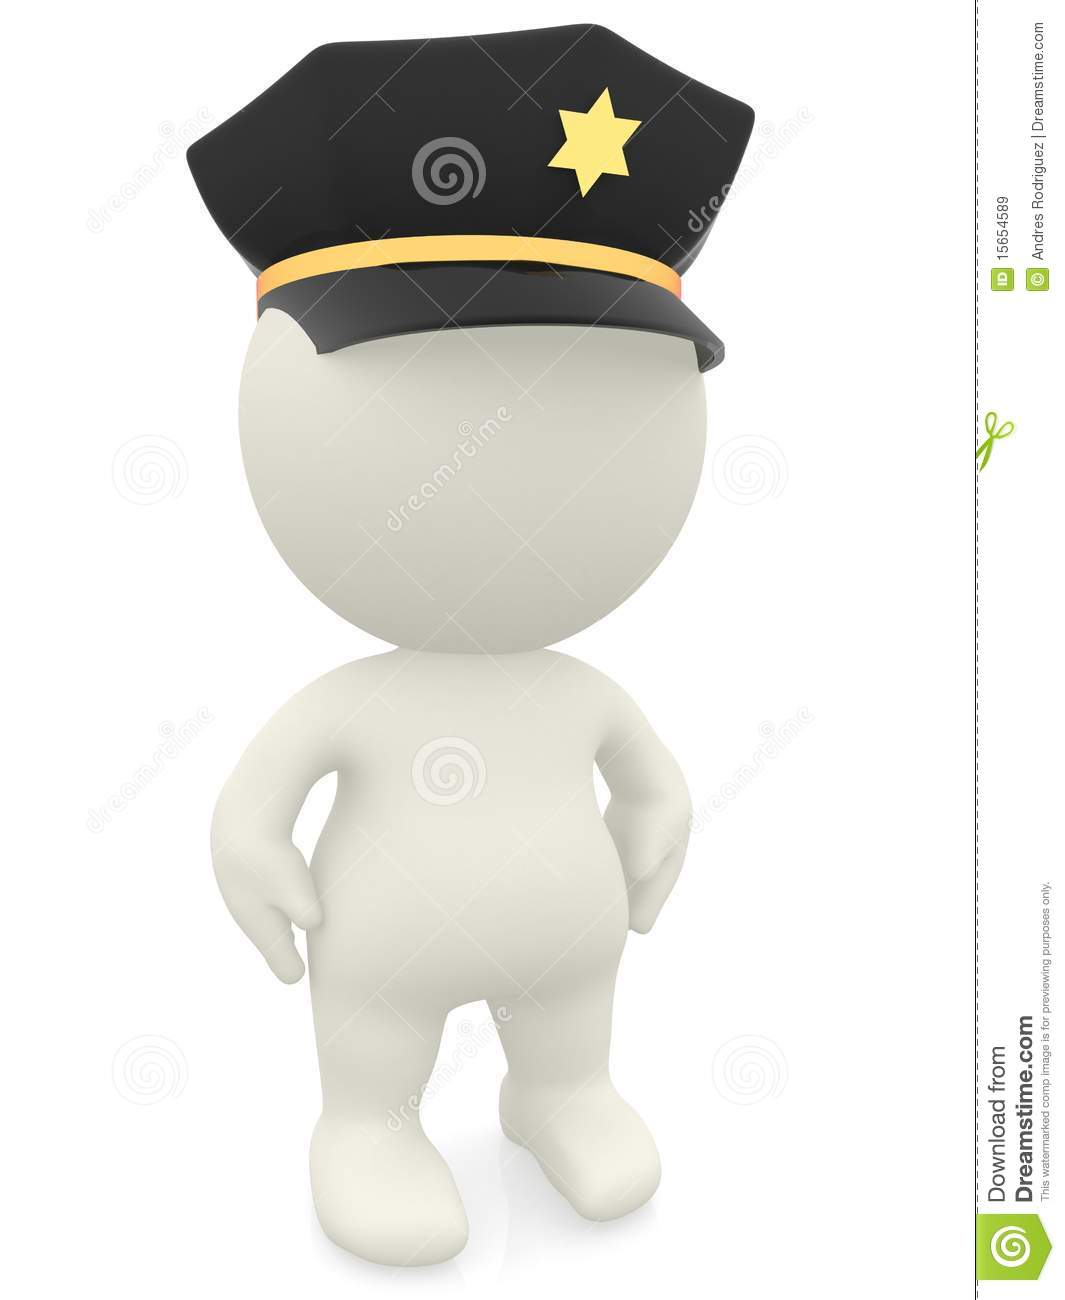 3D Police Officer Royalty Free Stock Images - Image: 15654589